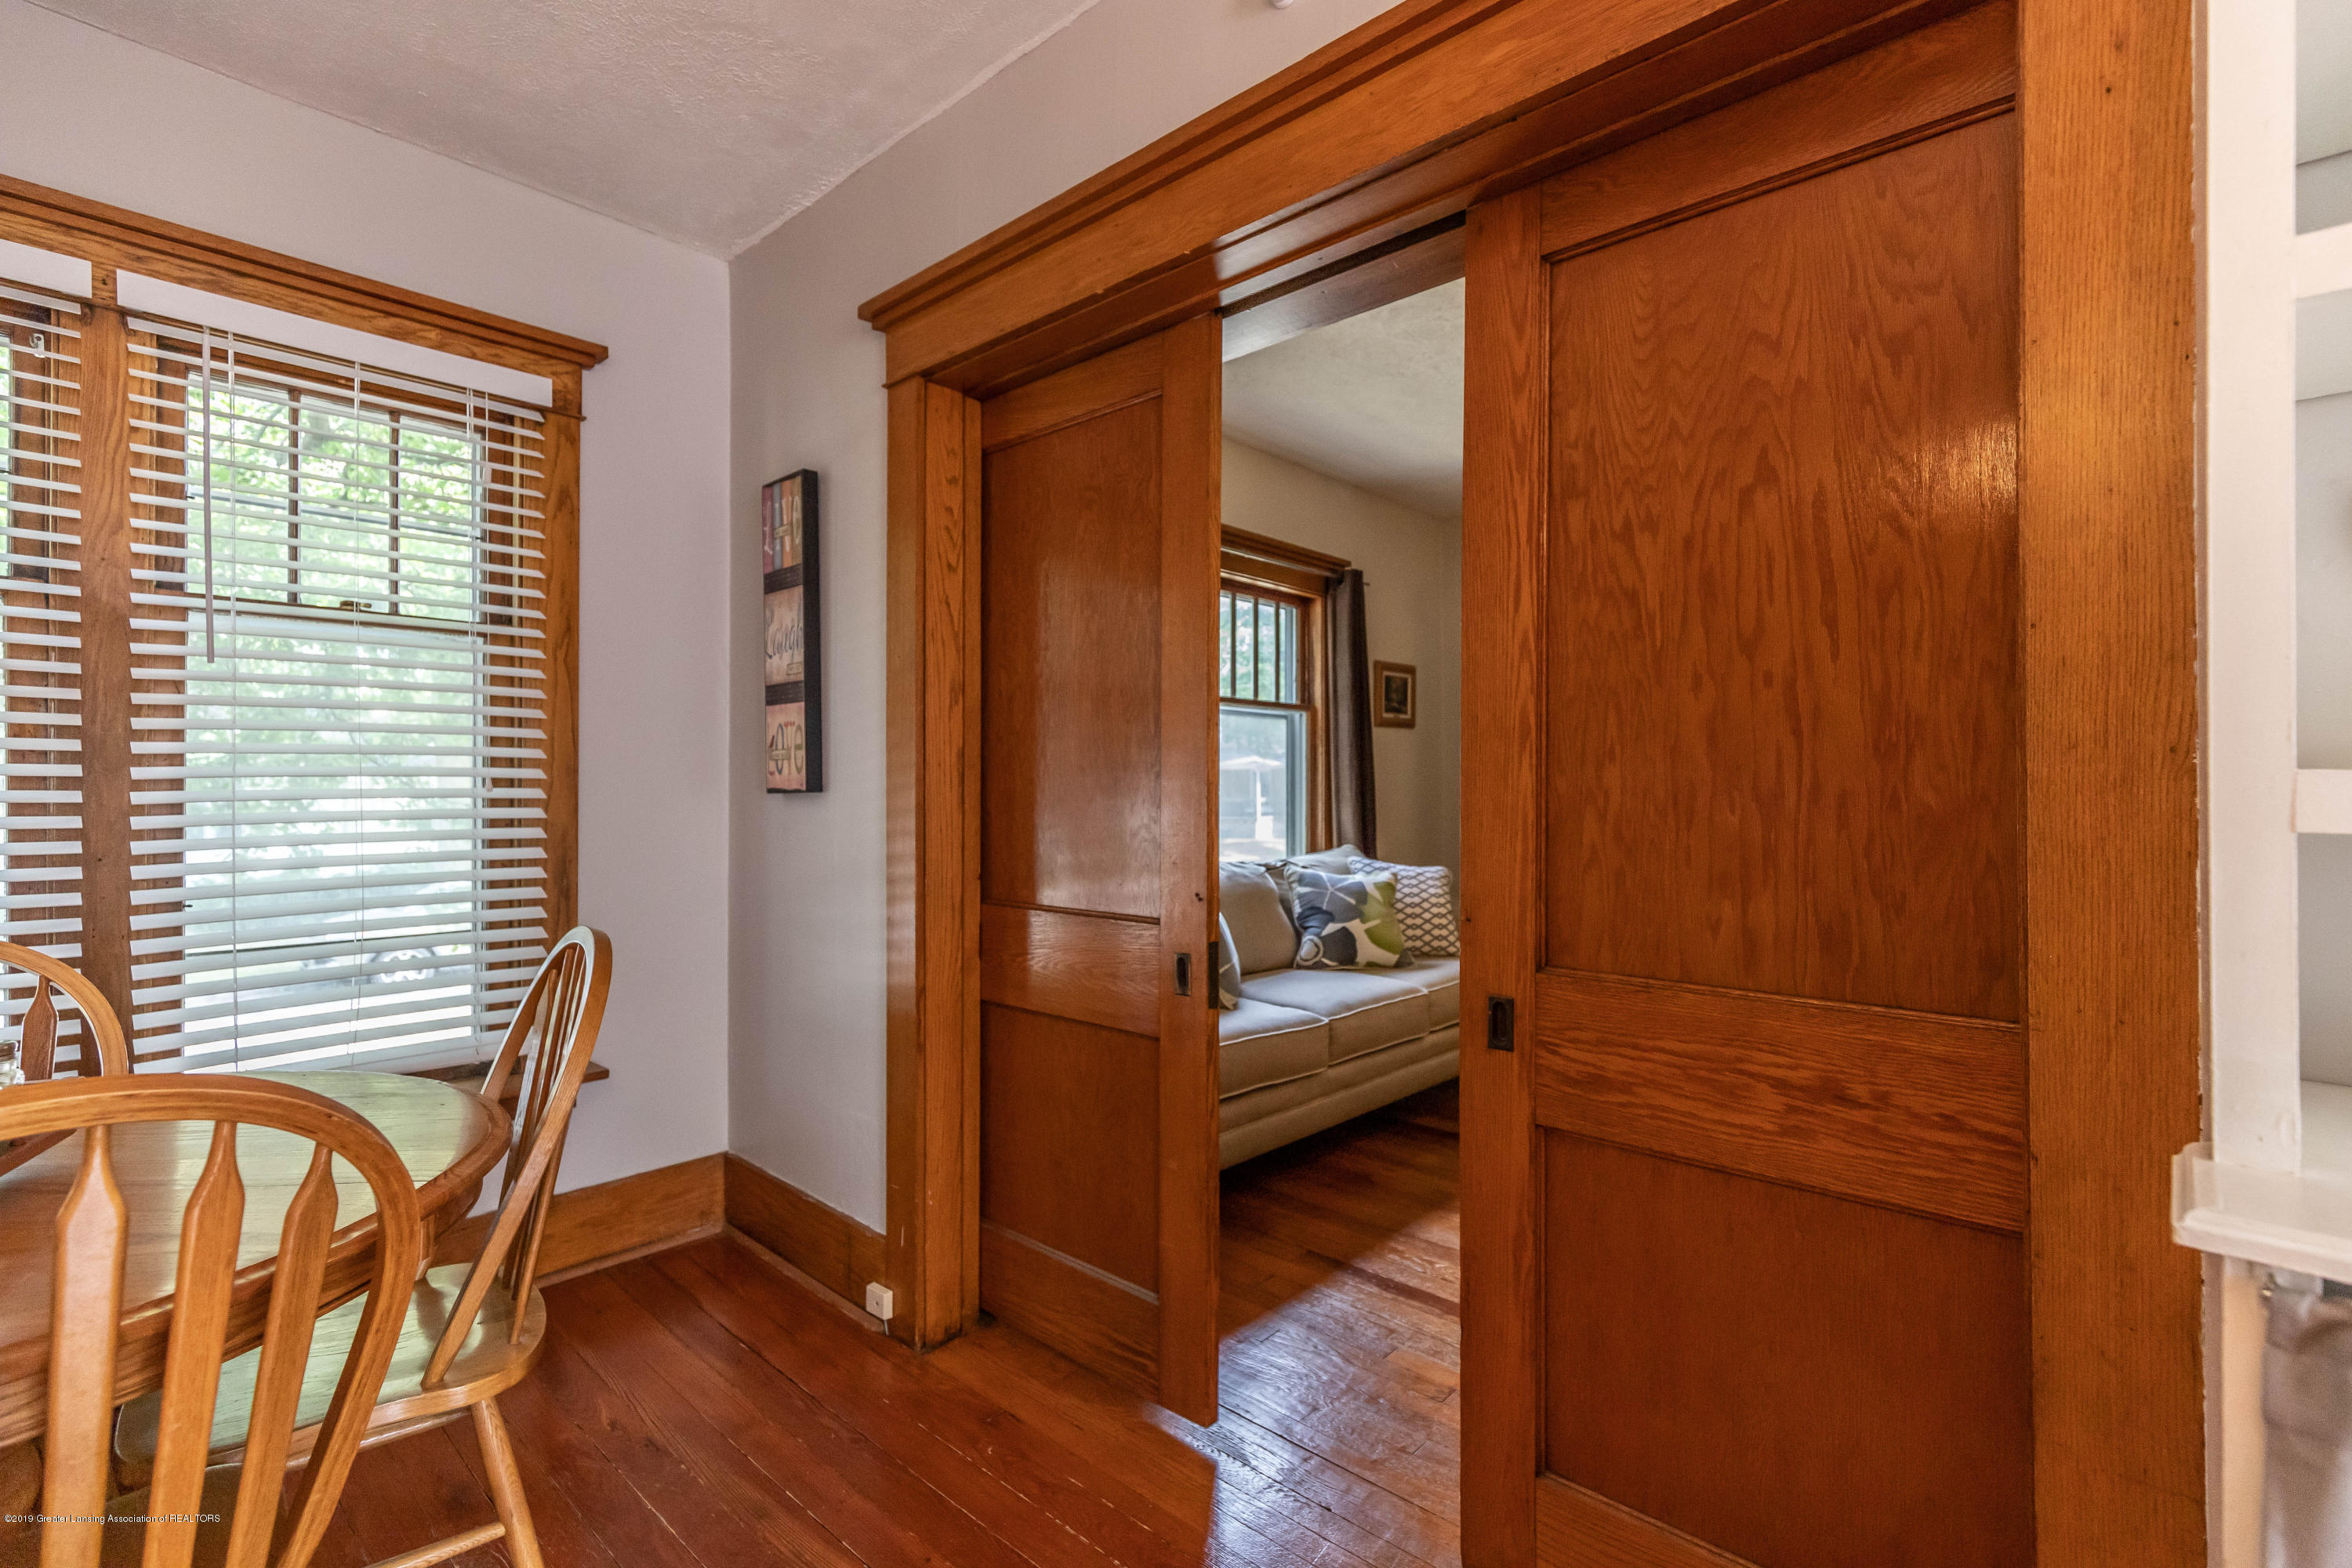 233 N Magnolia Ave - nmagpocket (1 of 1) - 7